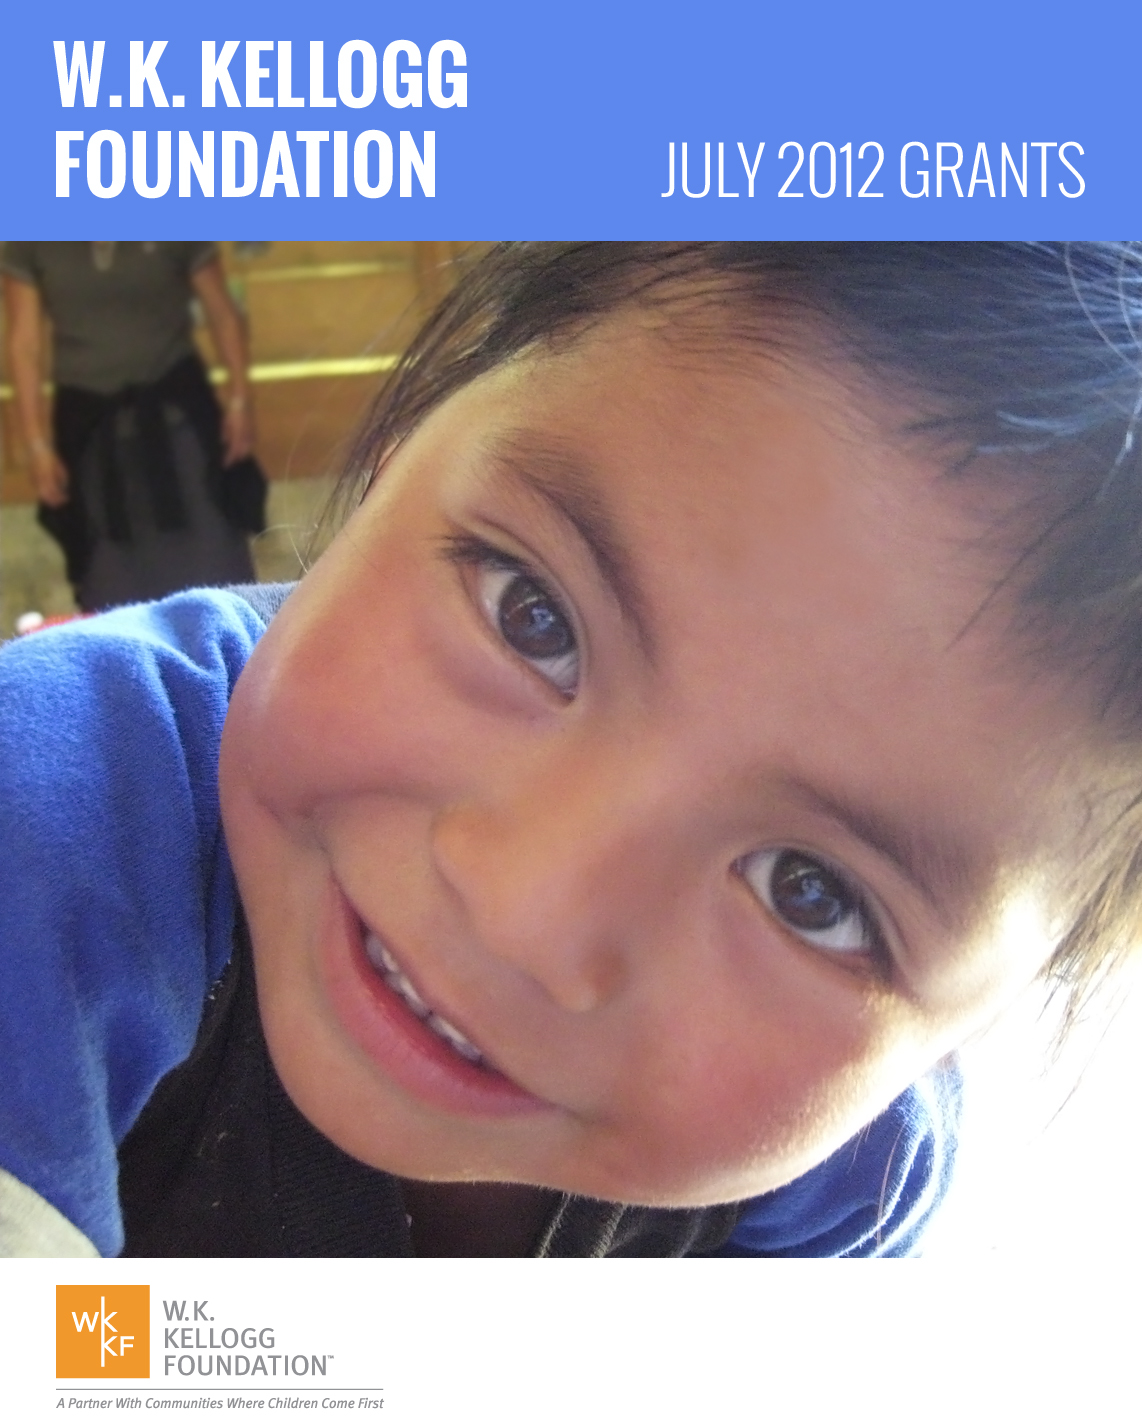 W.K. Kellogg Foundation Grants - July 2012